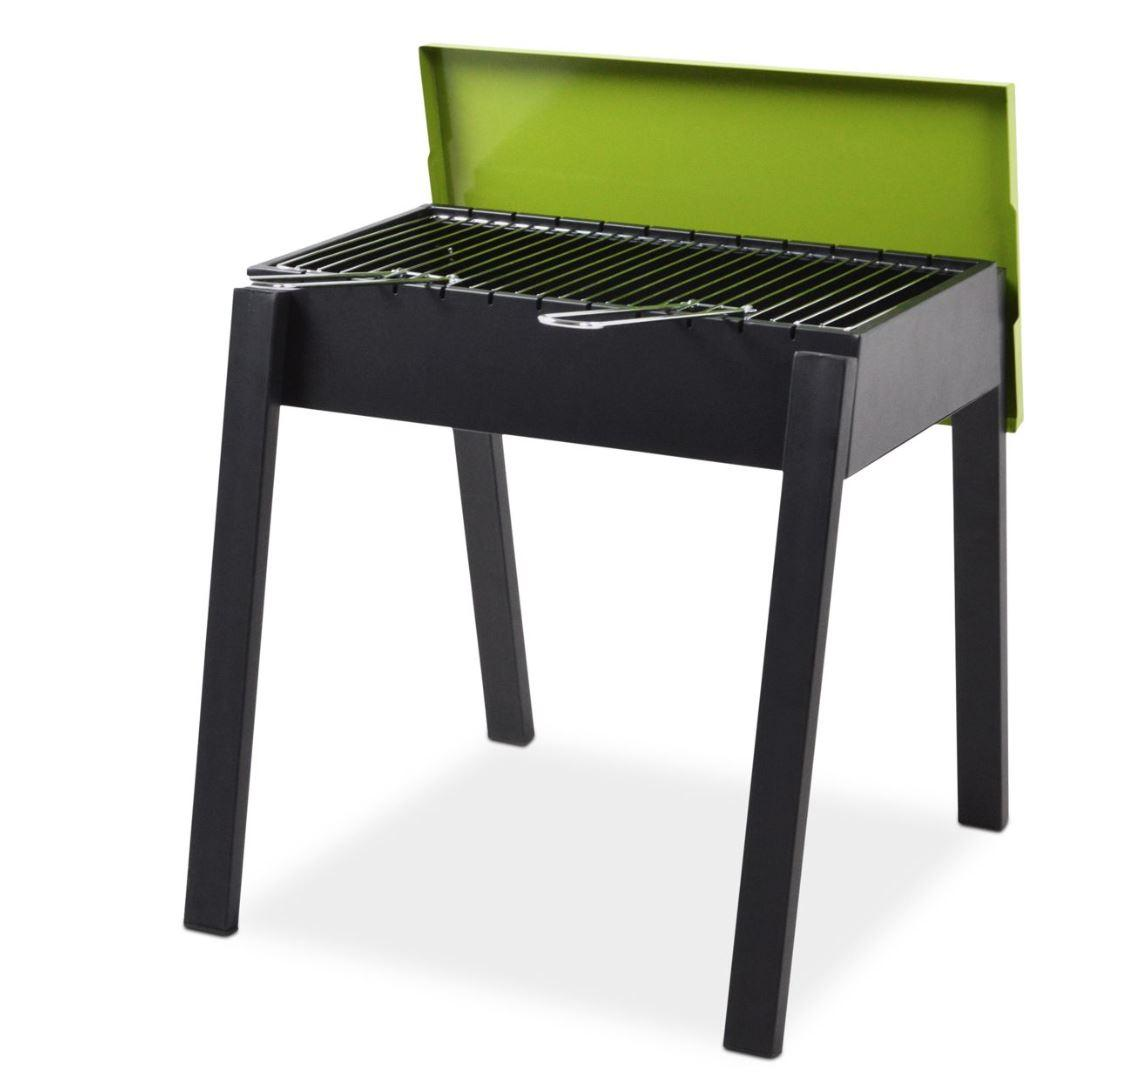 Barbecue Aldi Where To Buy The Best And Cheapest Gas Charcoal Or Disposable Bbq